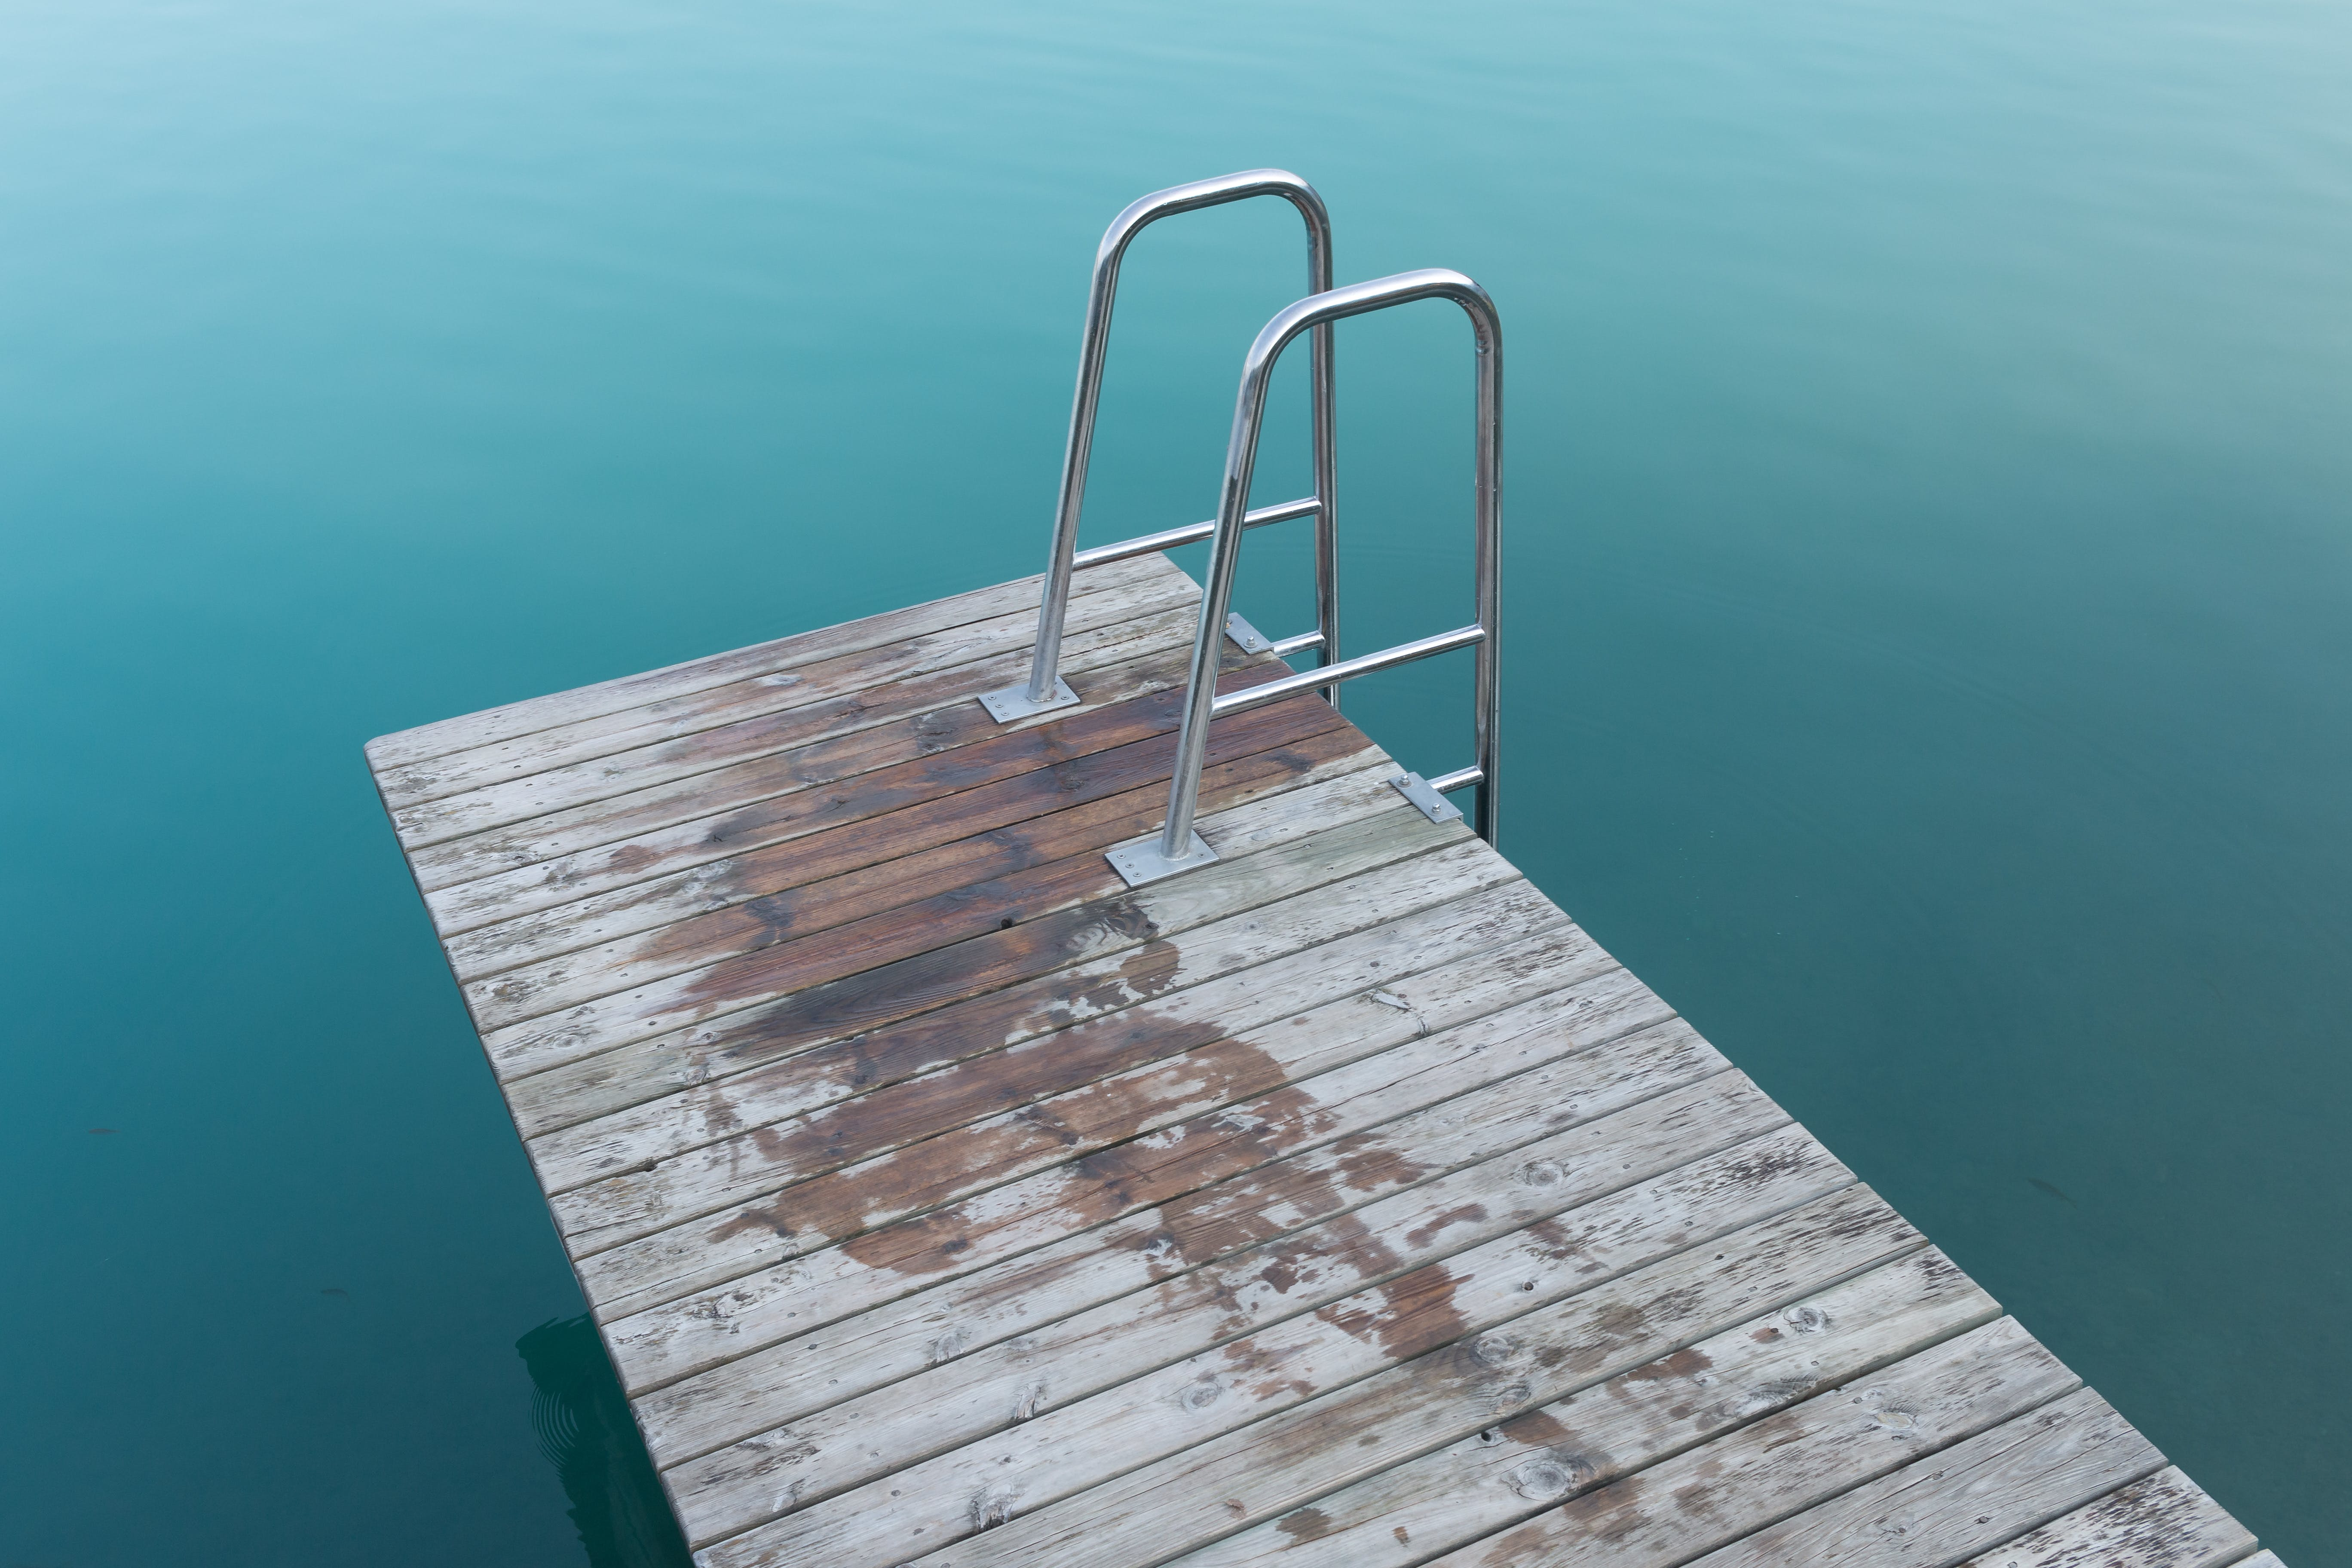 Empty Brown Wooden Dock With Ladder on Body of Water